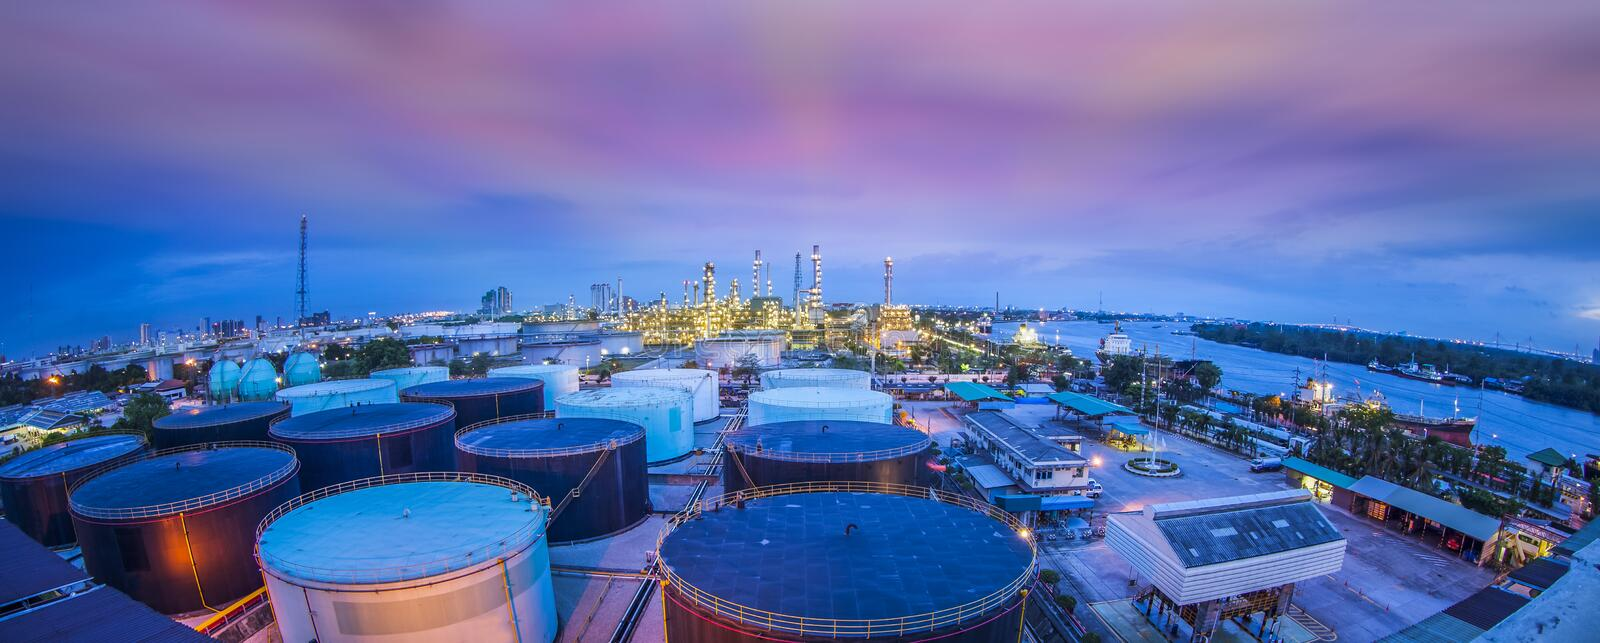 Oil refinery industry with oil storage tank. Landscape of oil refinery industry with oil storage tank royalty free stock image